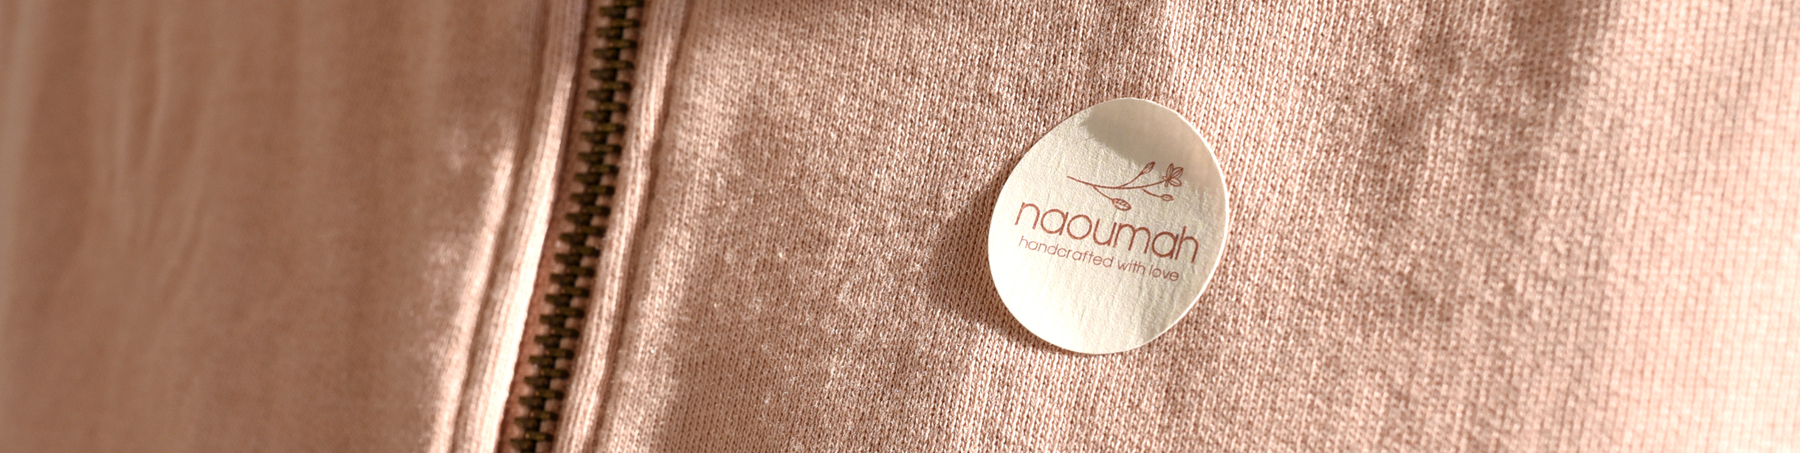 naoumah sticker tag on clothes